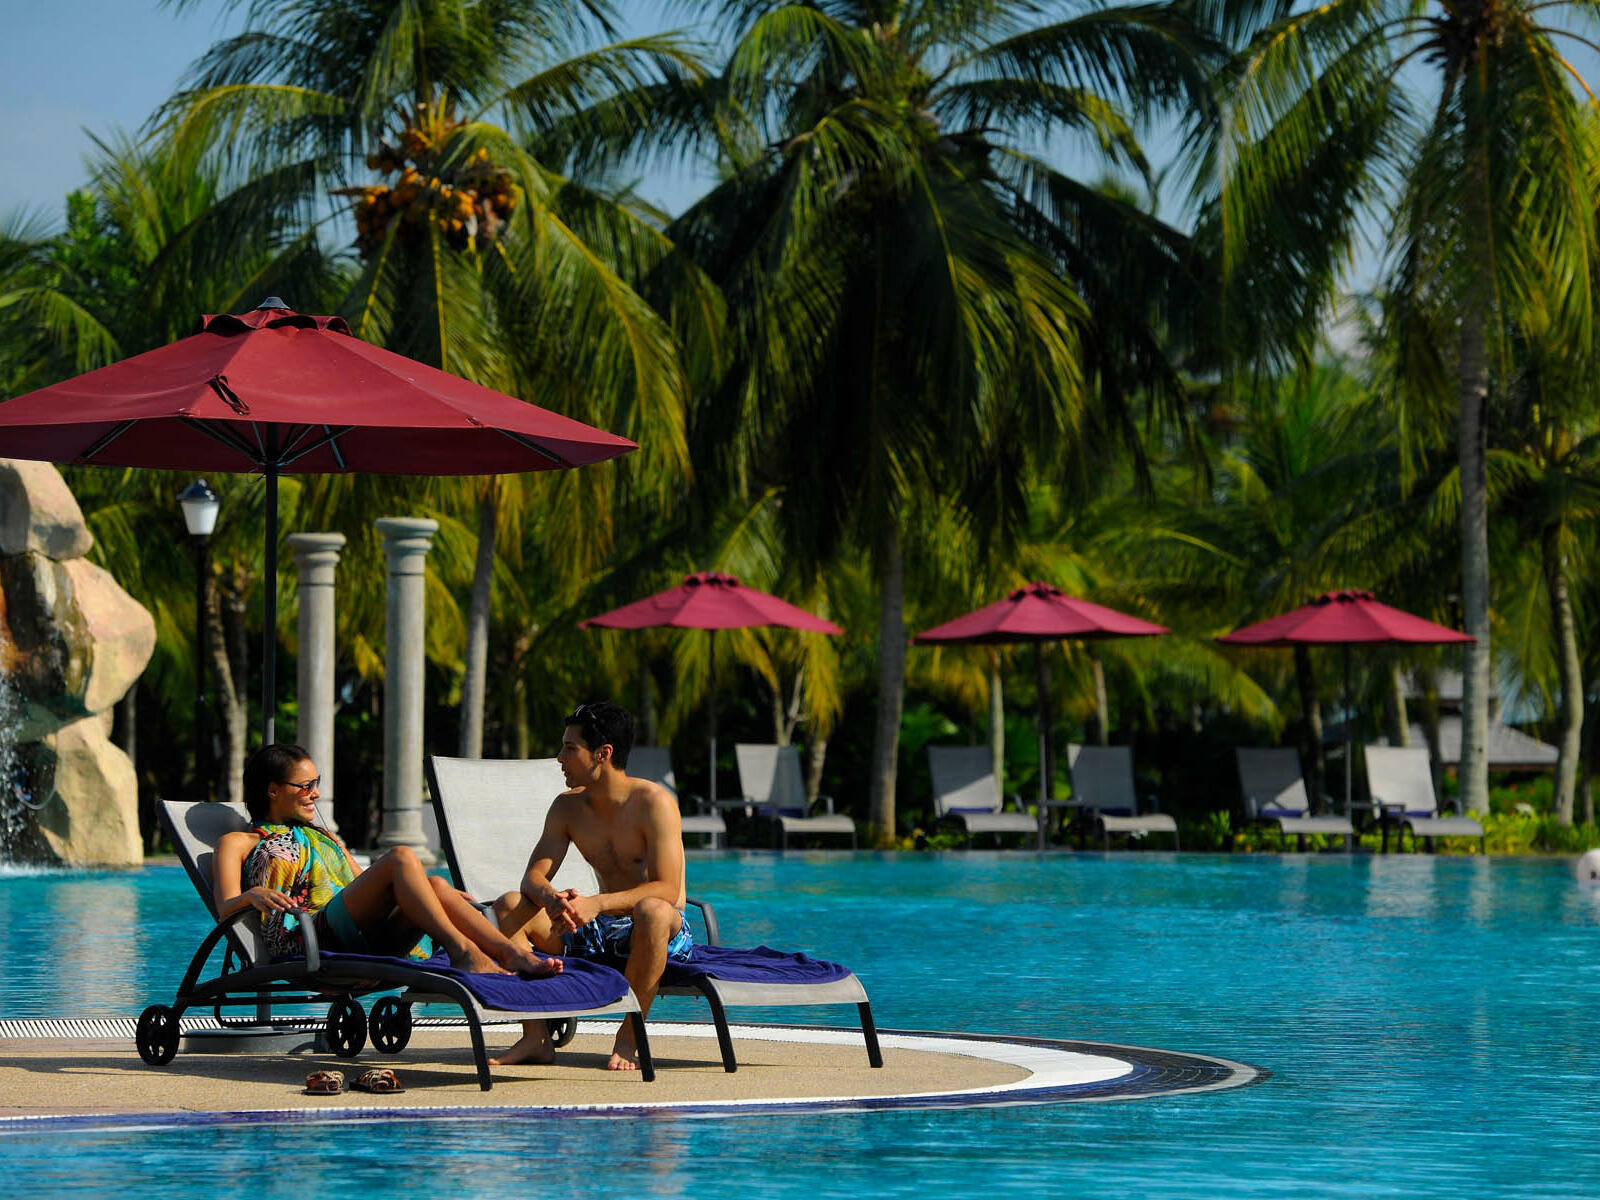 A couple on two pool chairs by the pool